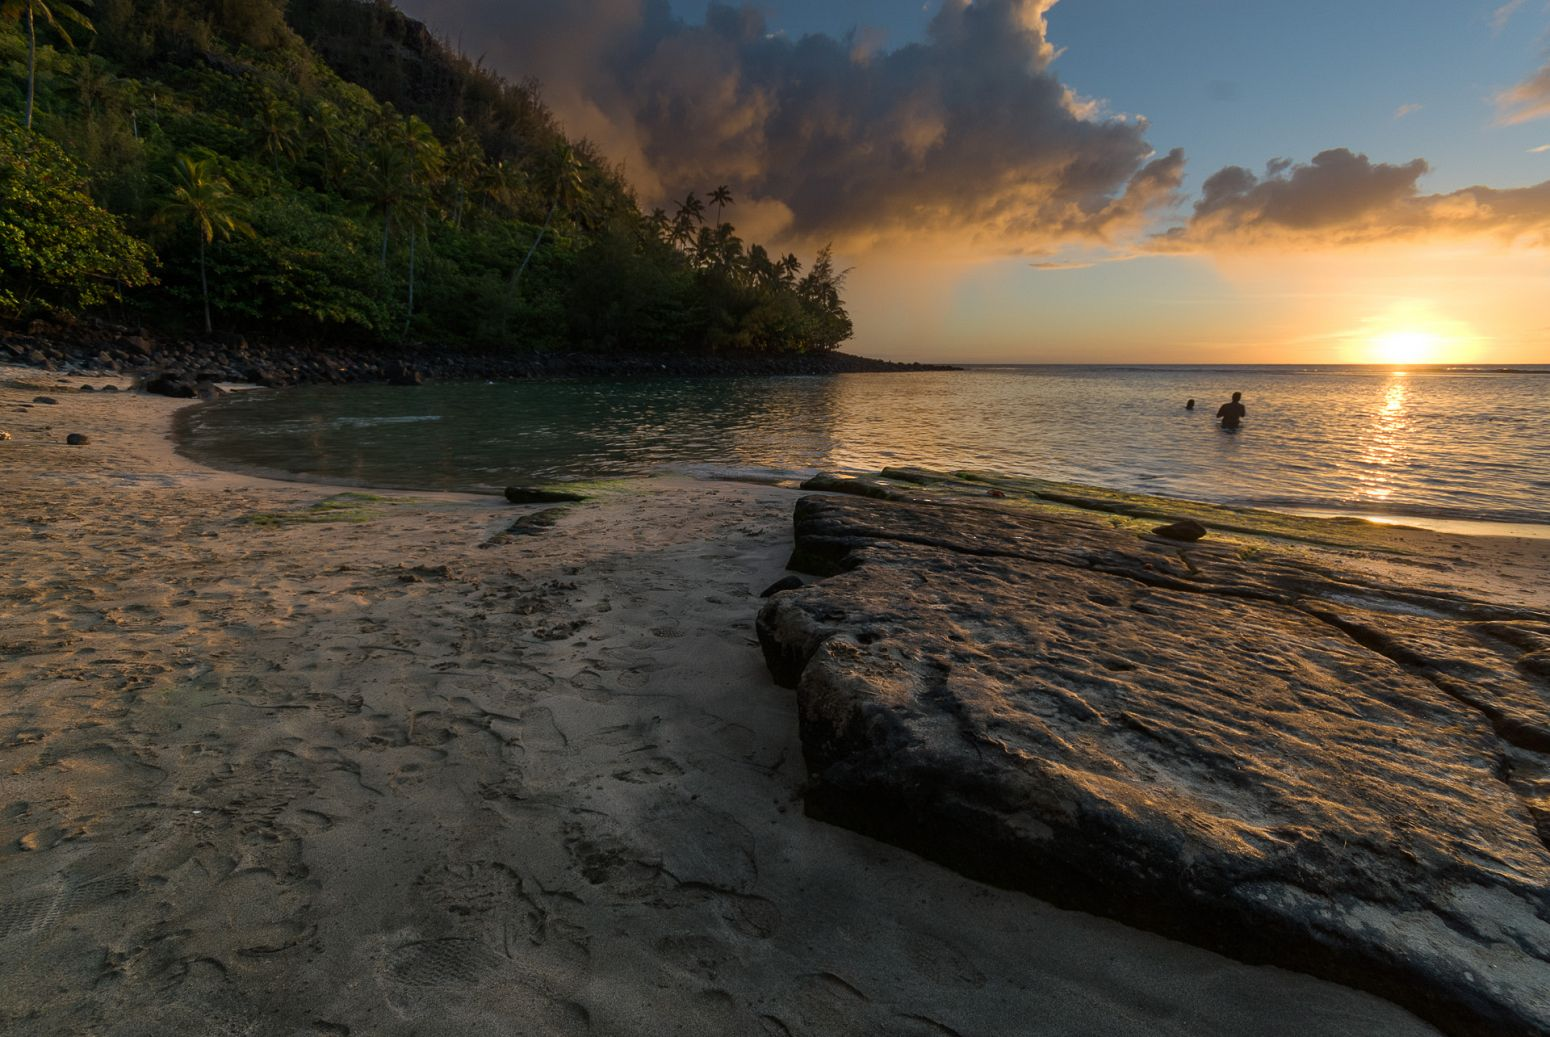 Ke'e Beach, Kauai, Hawaii, USA